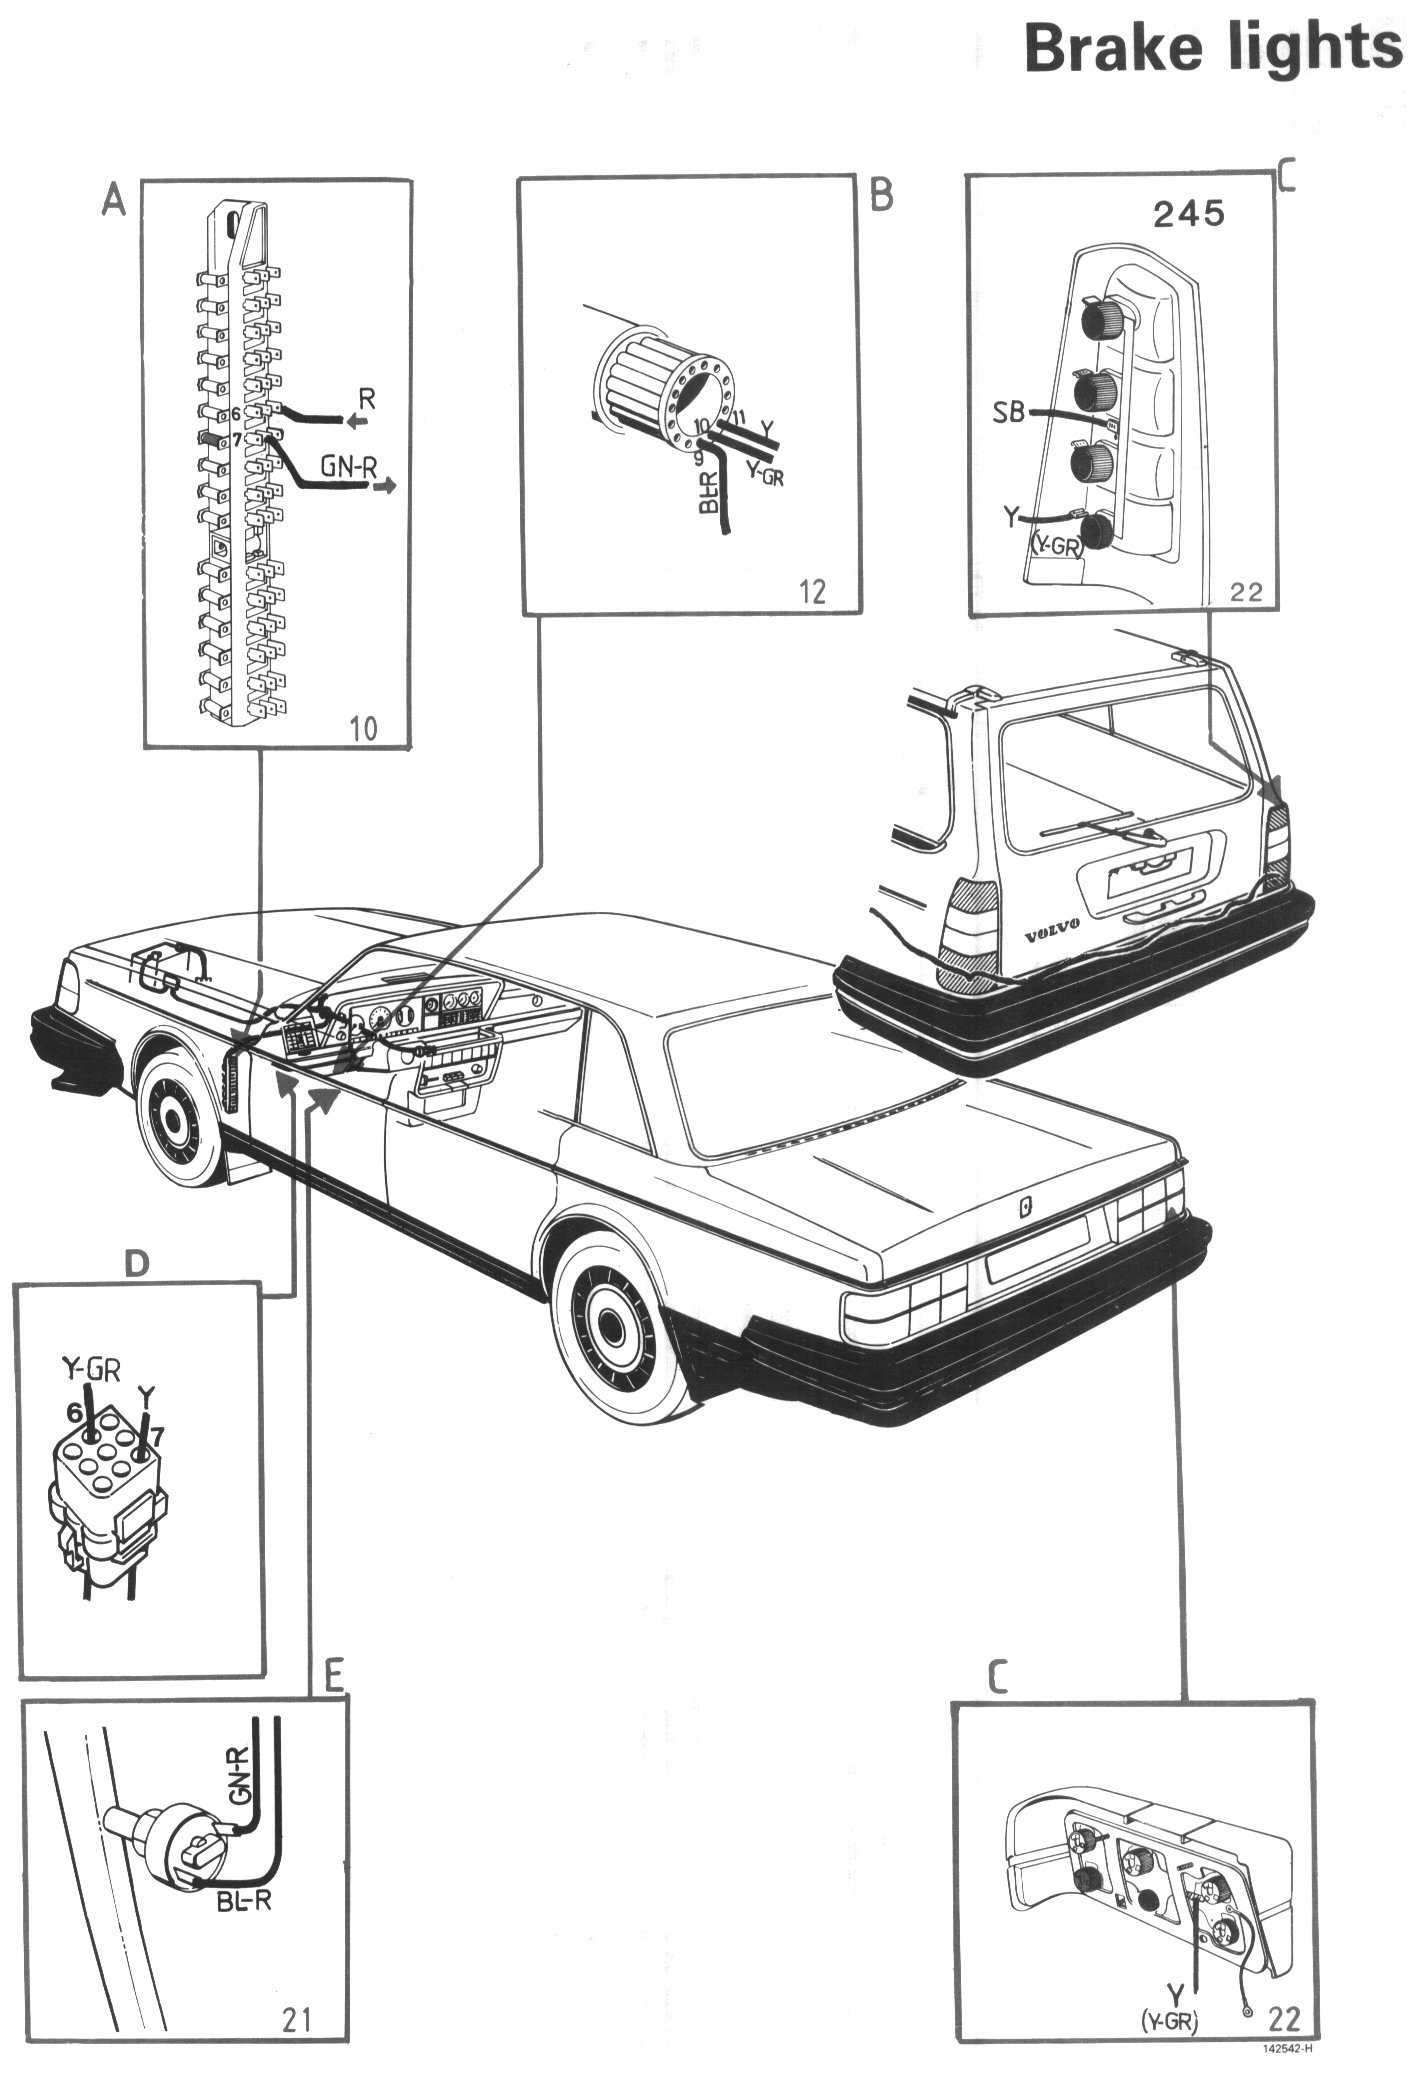 Volvo 240 Wagon Tail Light Wiring Diagram : Volvo tail light wiring new boiler diagram